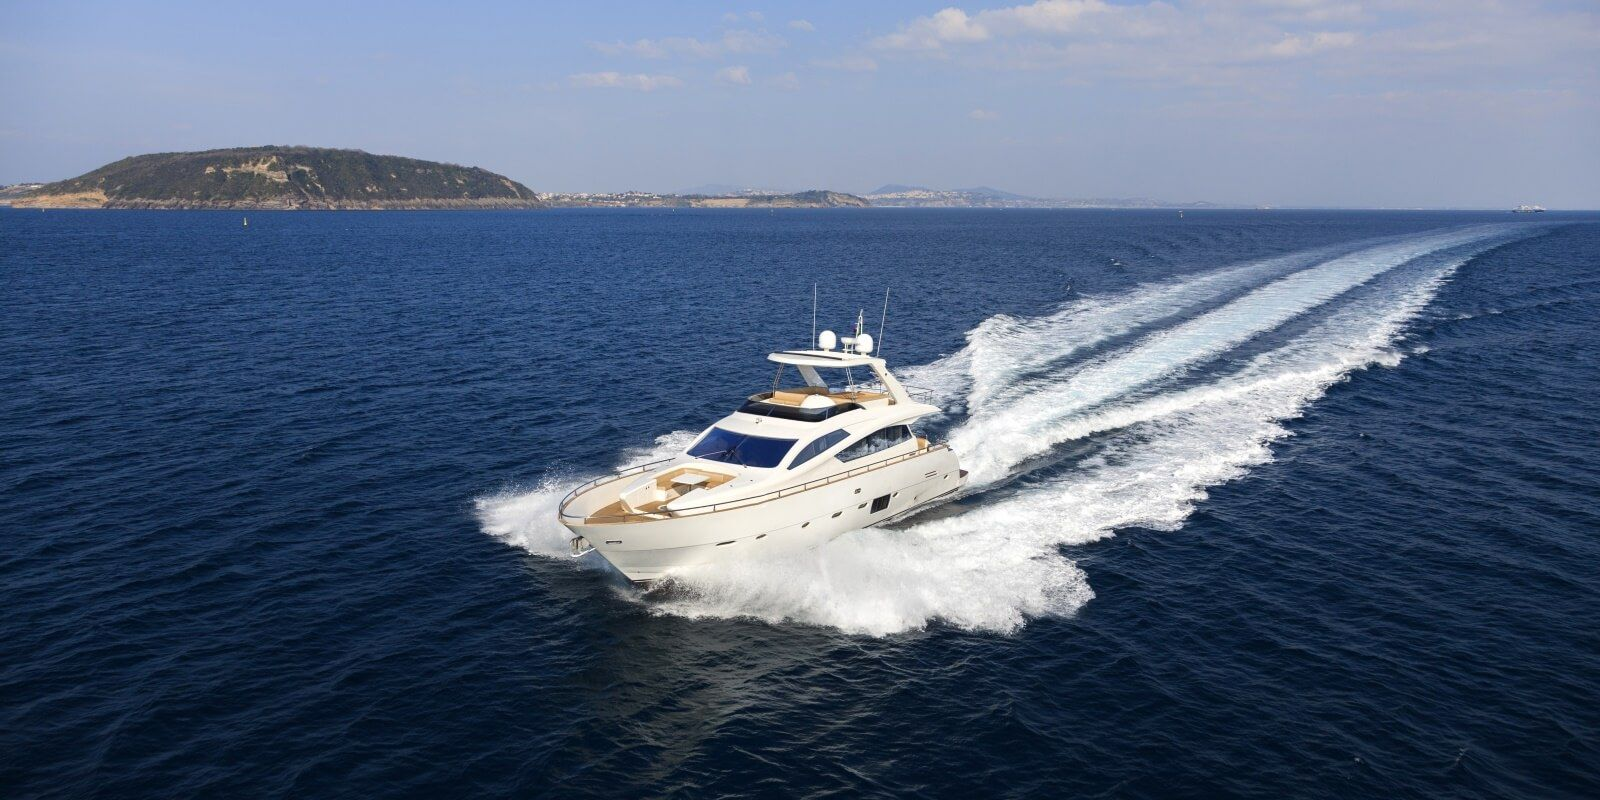 https://www.talamare.com/medias/A motor yacht cruising during a day yacht charter on the French Riviera